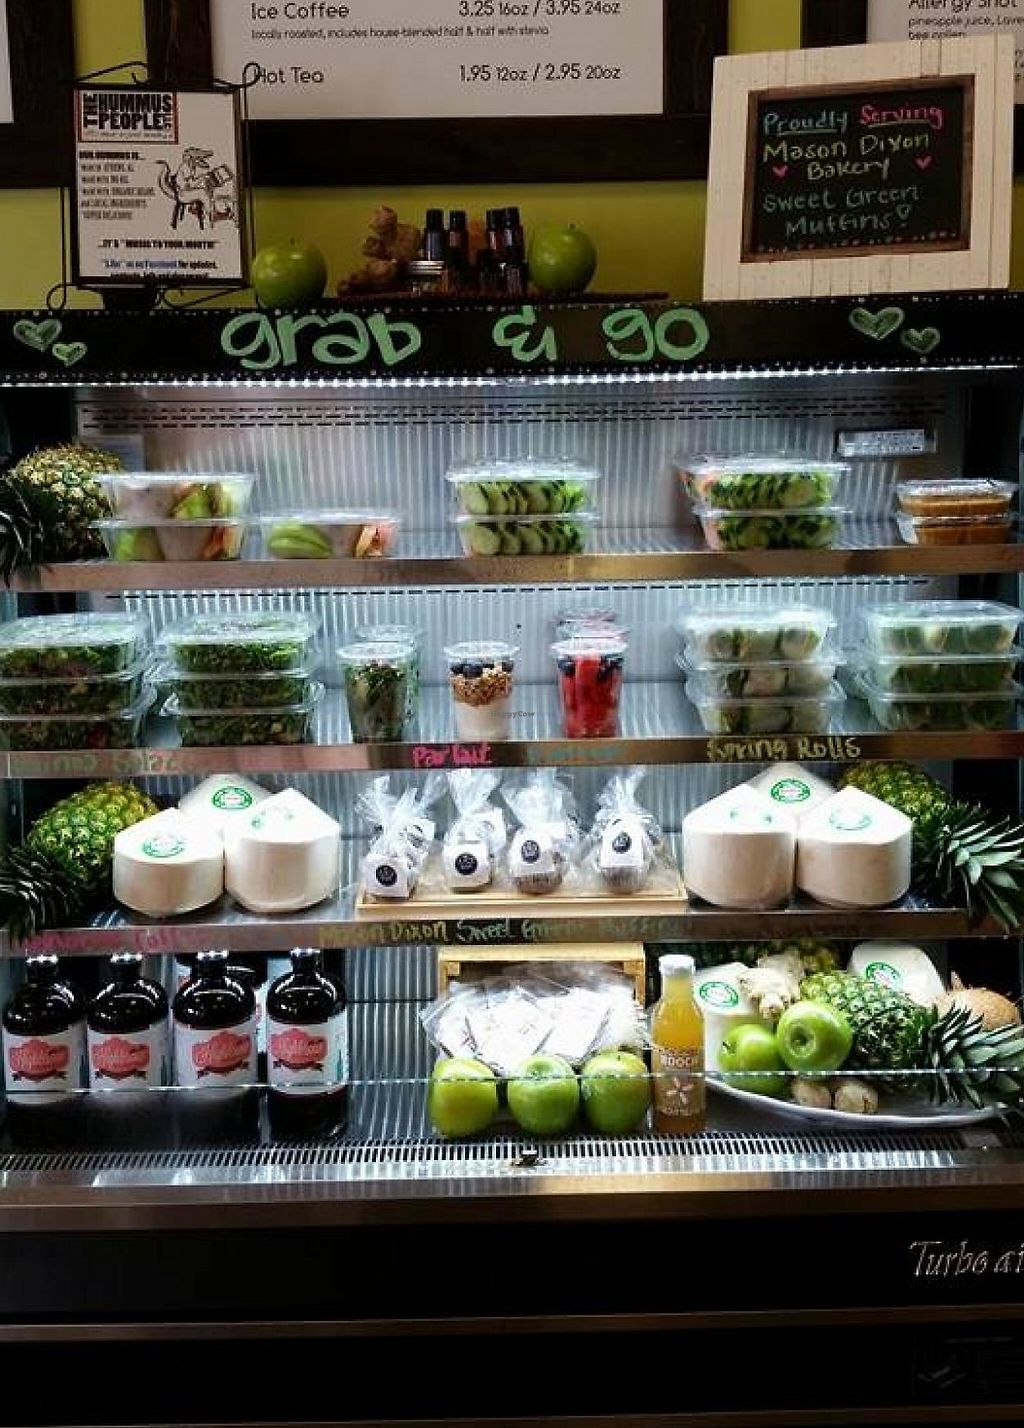 """Photo of I Love Juice Bar  by <a href=""""/members/profile/community"""">community</a> <br/>I Love Juice Bar <br/> June 24, 2014  - <a href='/contact/abuse/image/48321/190255'>Report</a>"""